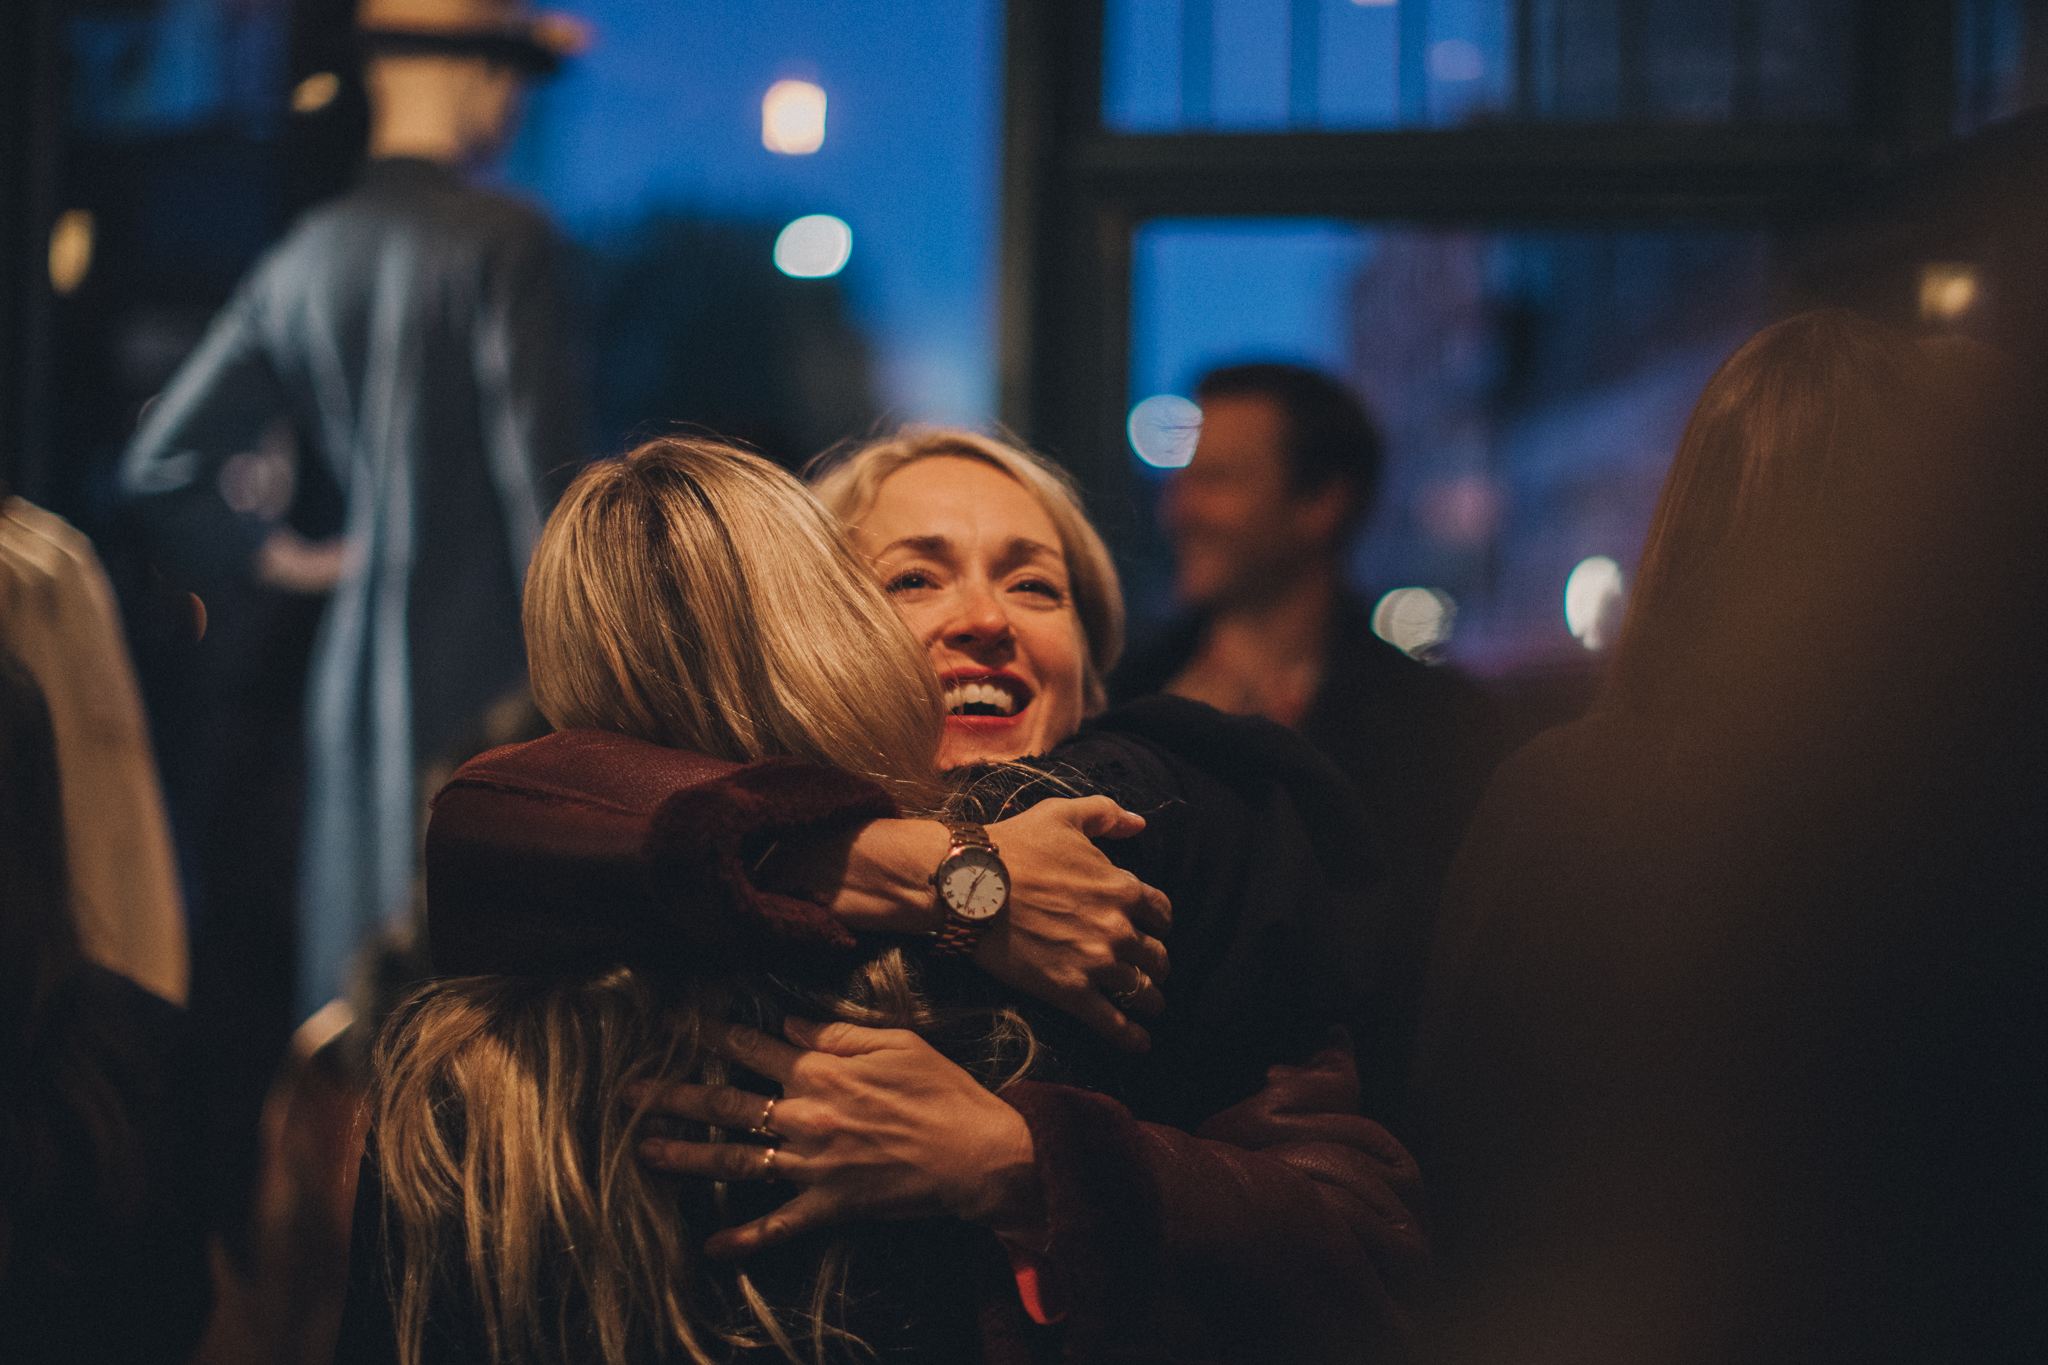 Broadway Market Launch Party - The opening of the new Retrouvé store